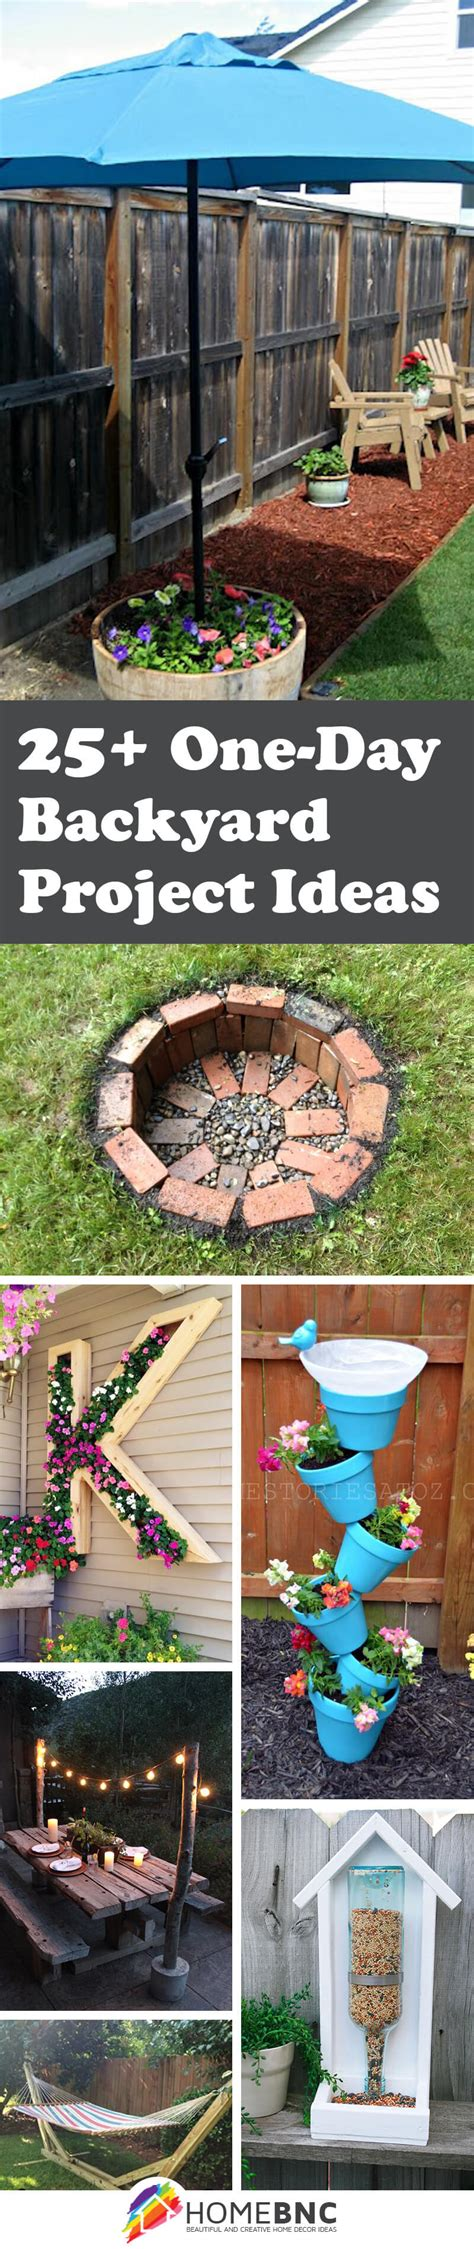 backyard experiments 25 best one day backyard project ideas and designs for 2017